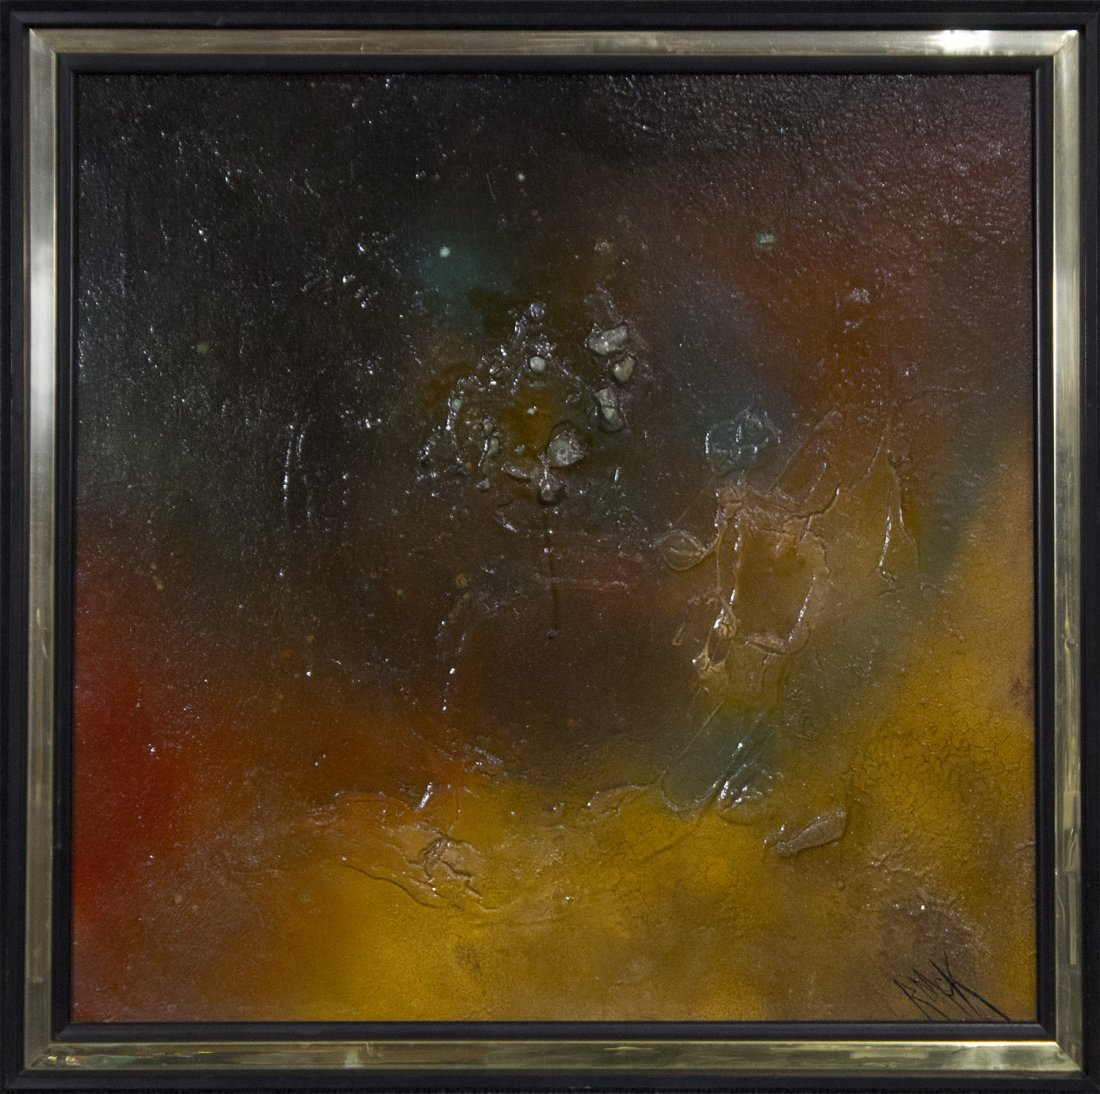 RUTH MCKEE 1929-2012, Pa Artist OIL/b ABSTRACT